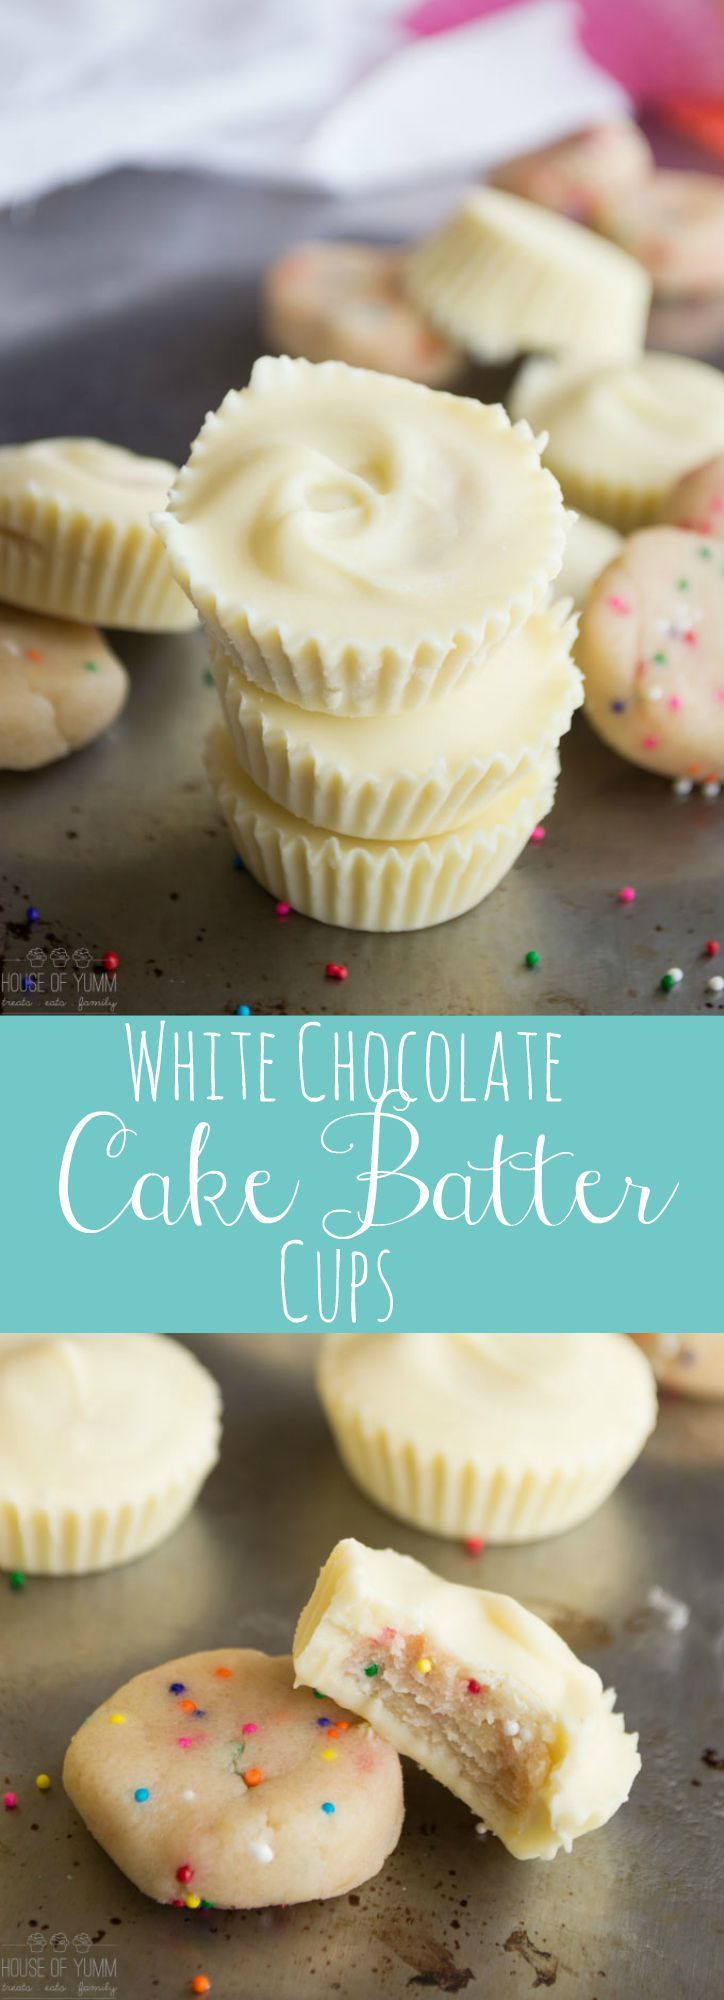 White Chocolate Cake Batter Cups